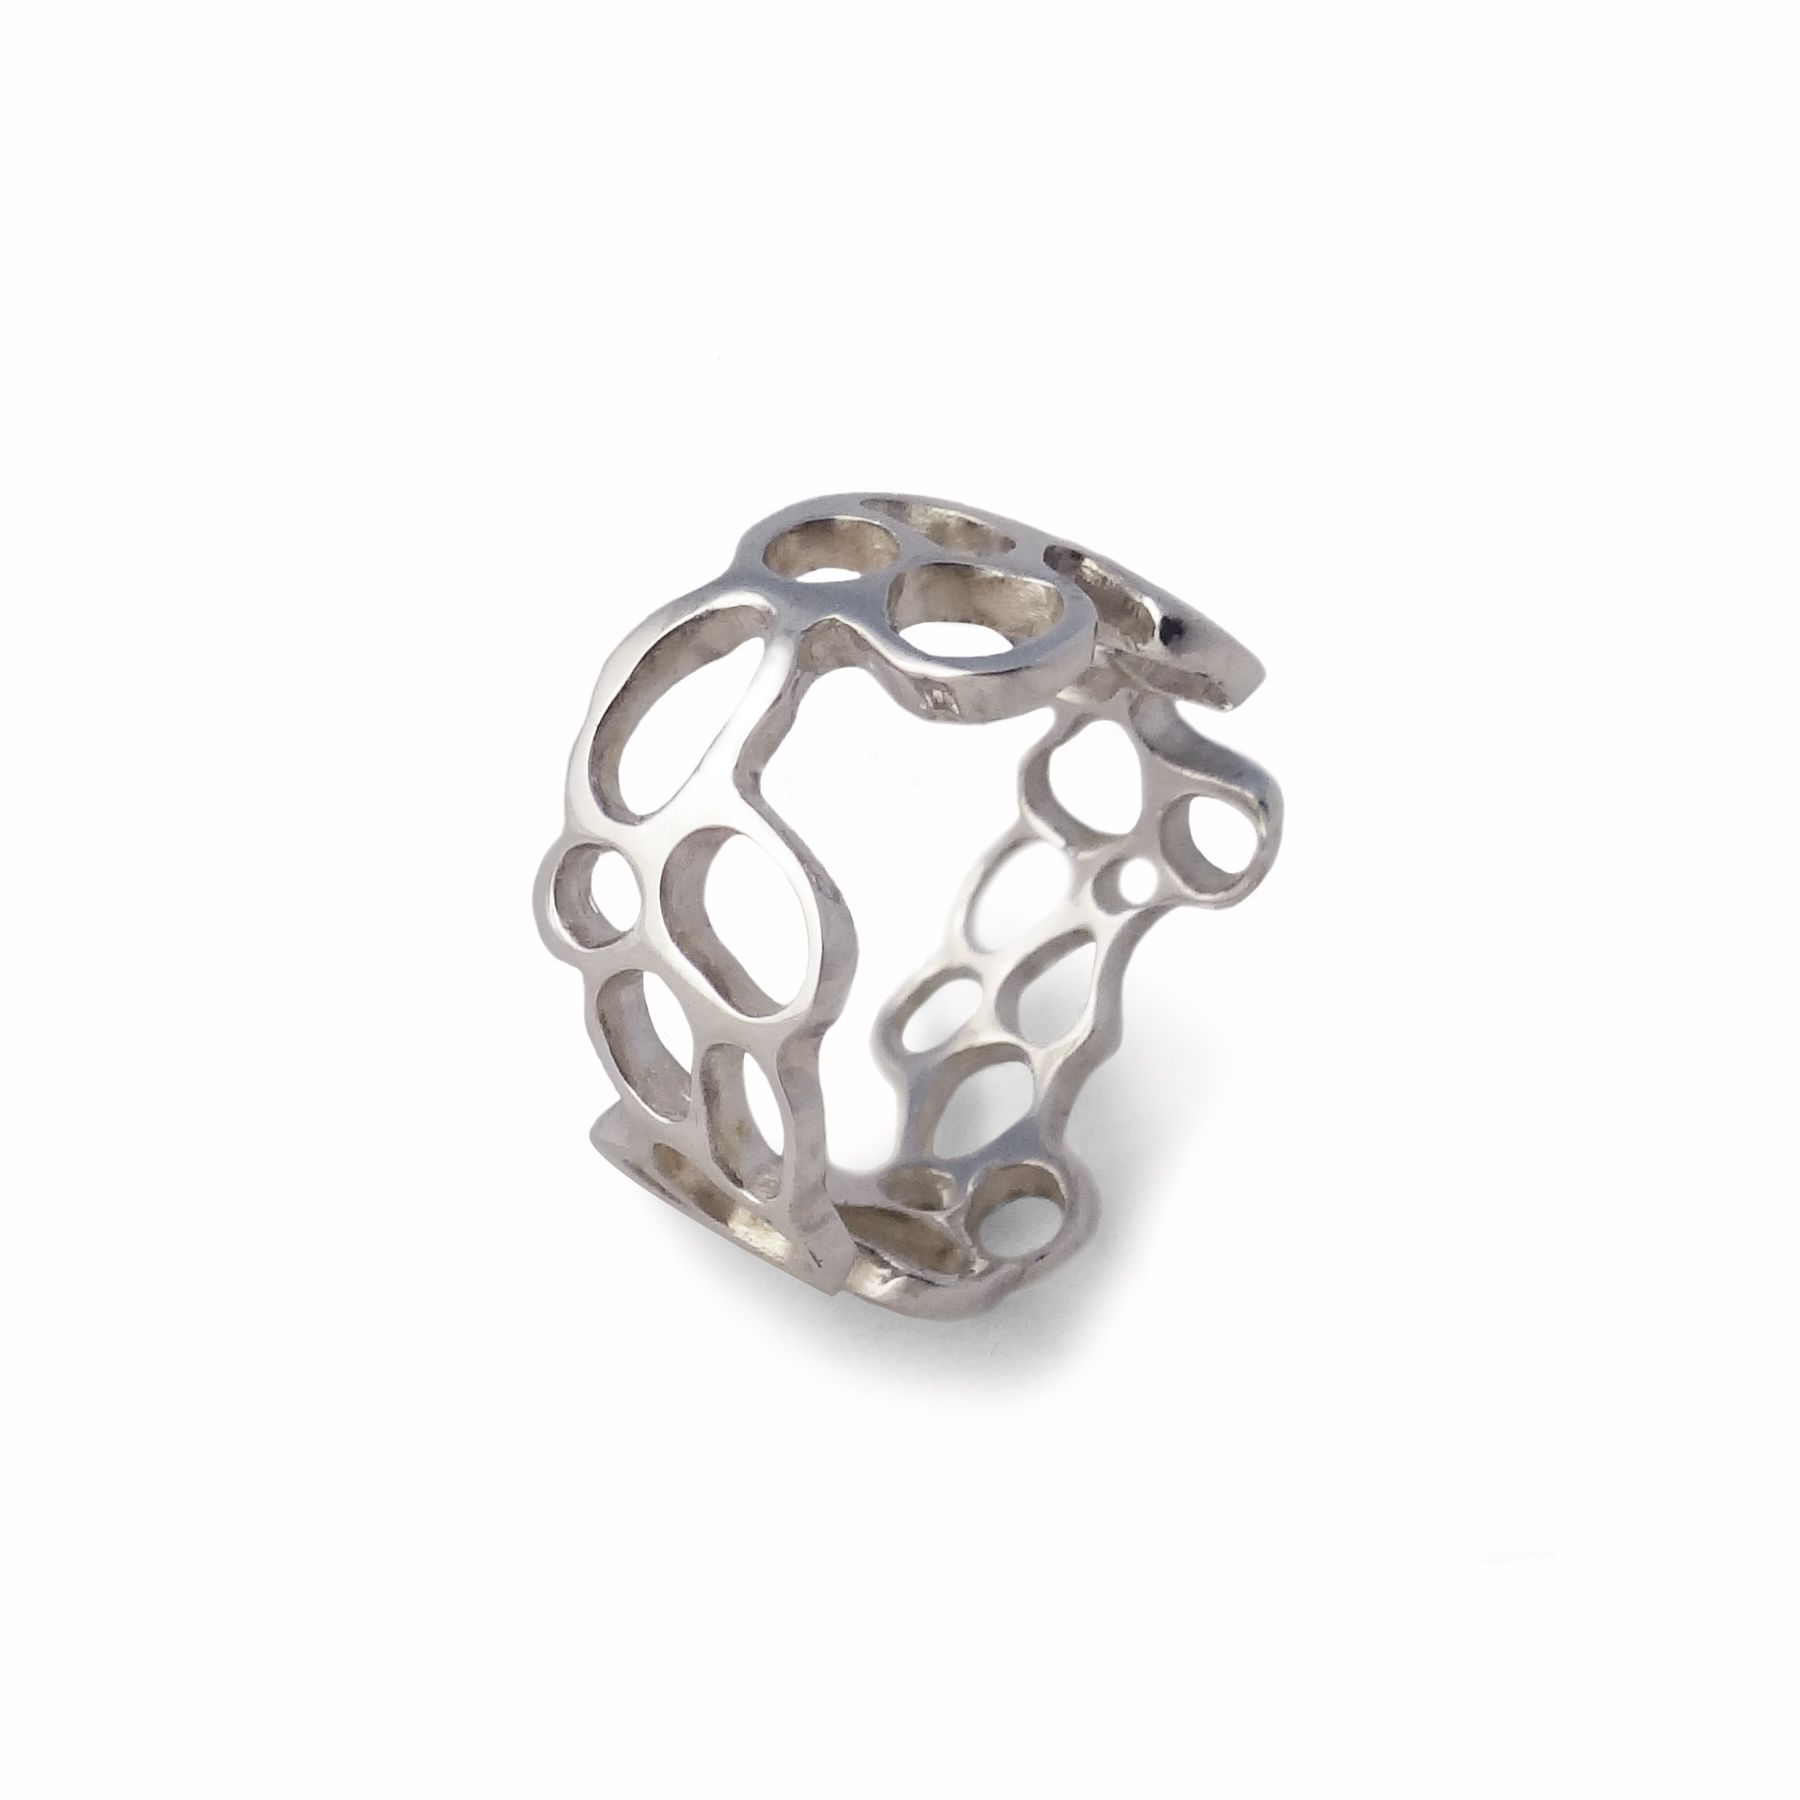 buy a handmade argentium silver or gold gaudi ring made